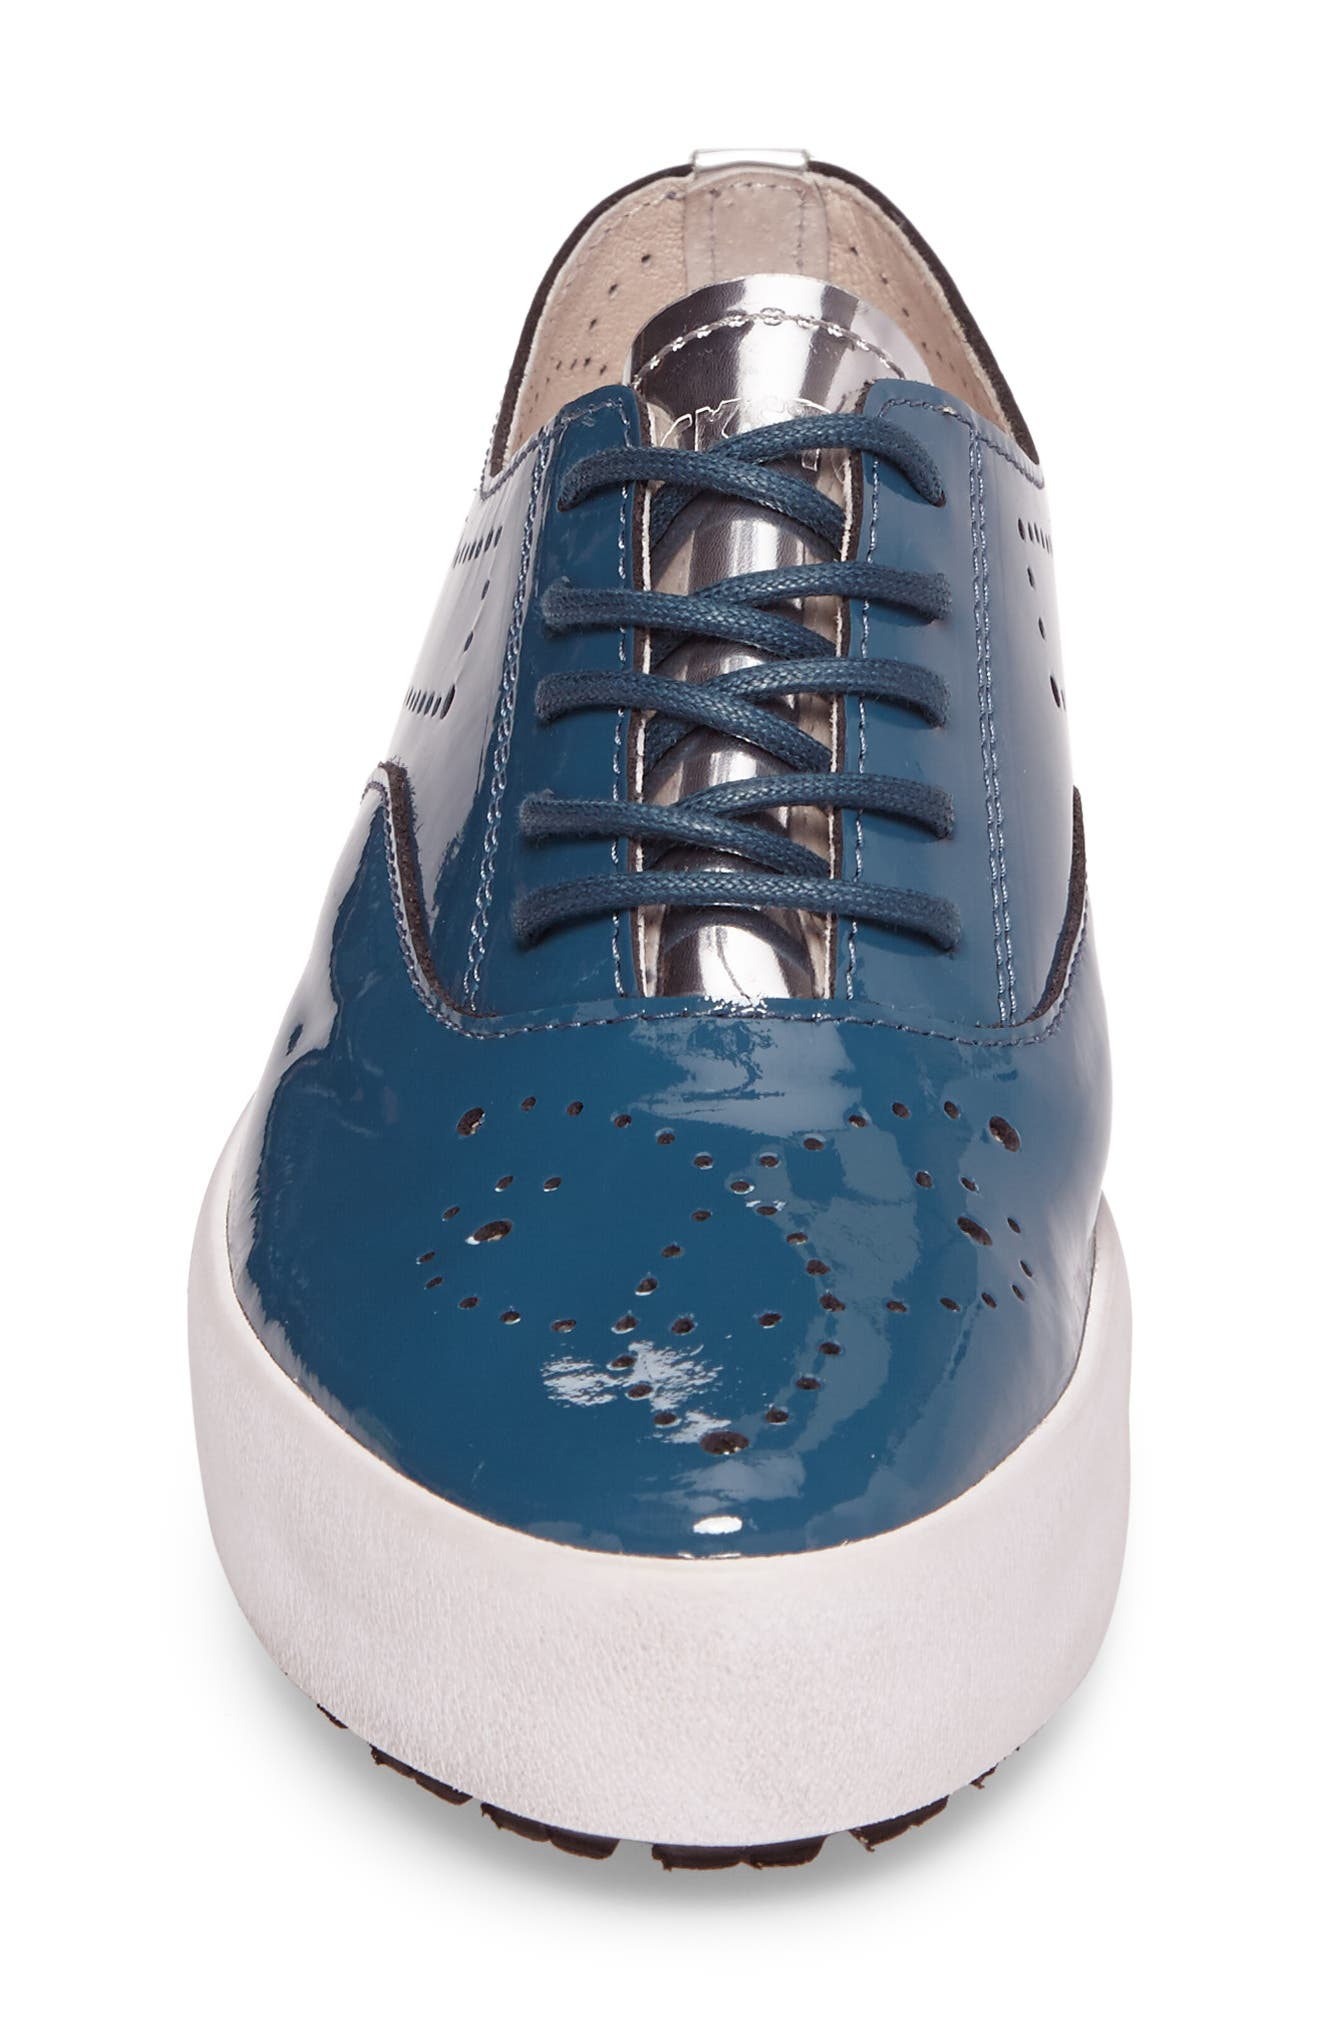 NL41 Sneaker,                             Alternate thumbnail 4, color,                             Turquoise Patent Leather